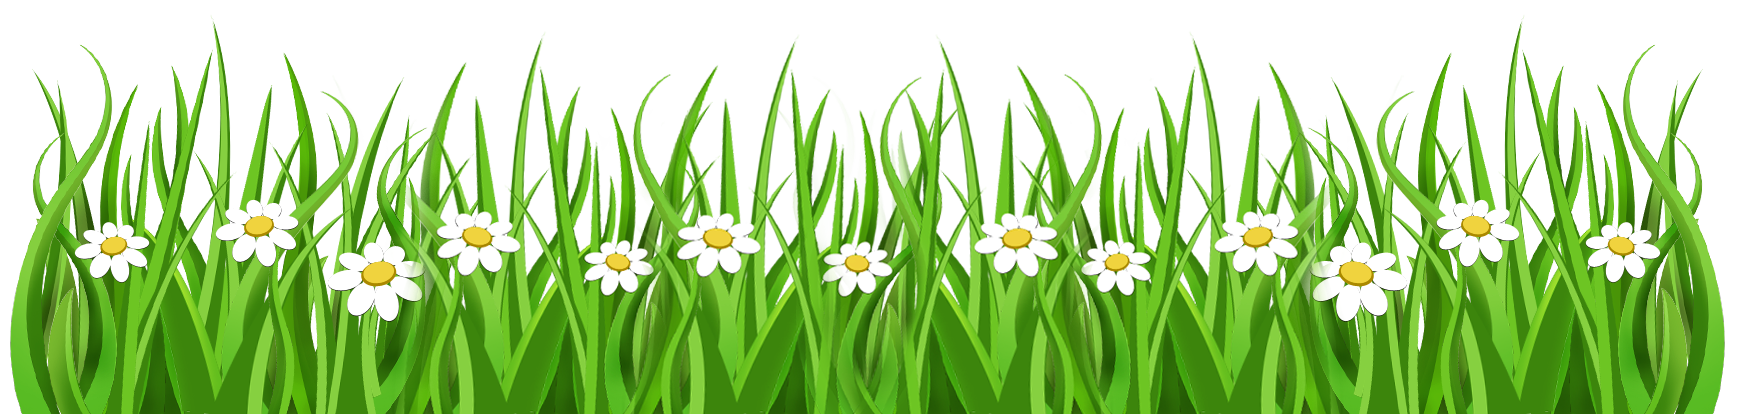 Free clip art grass clipart image 2.